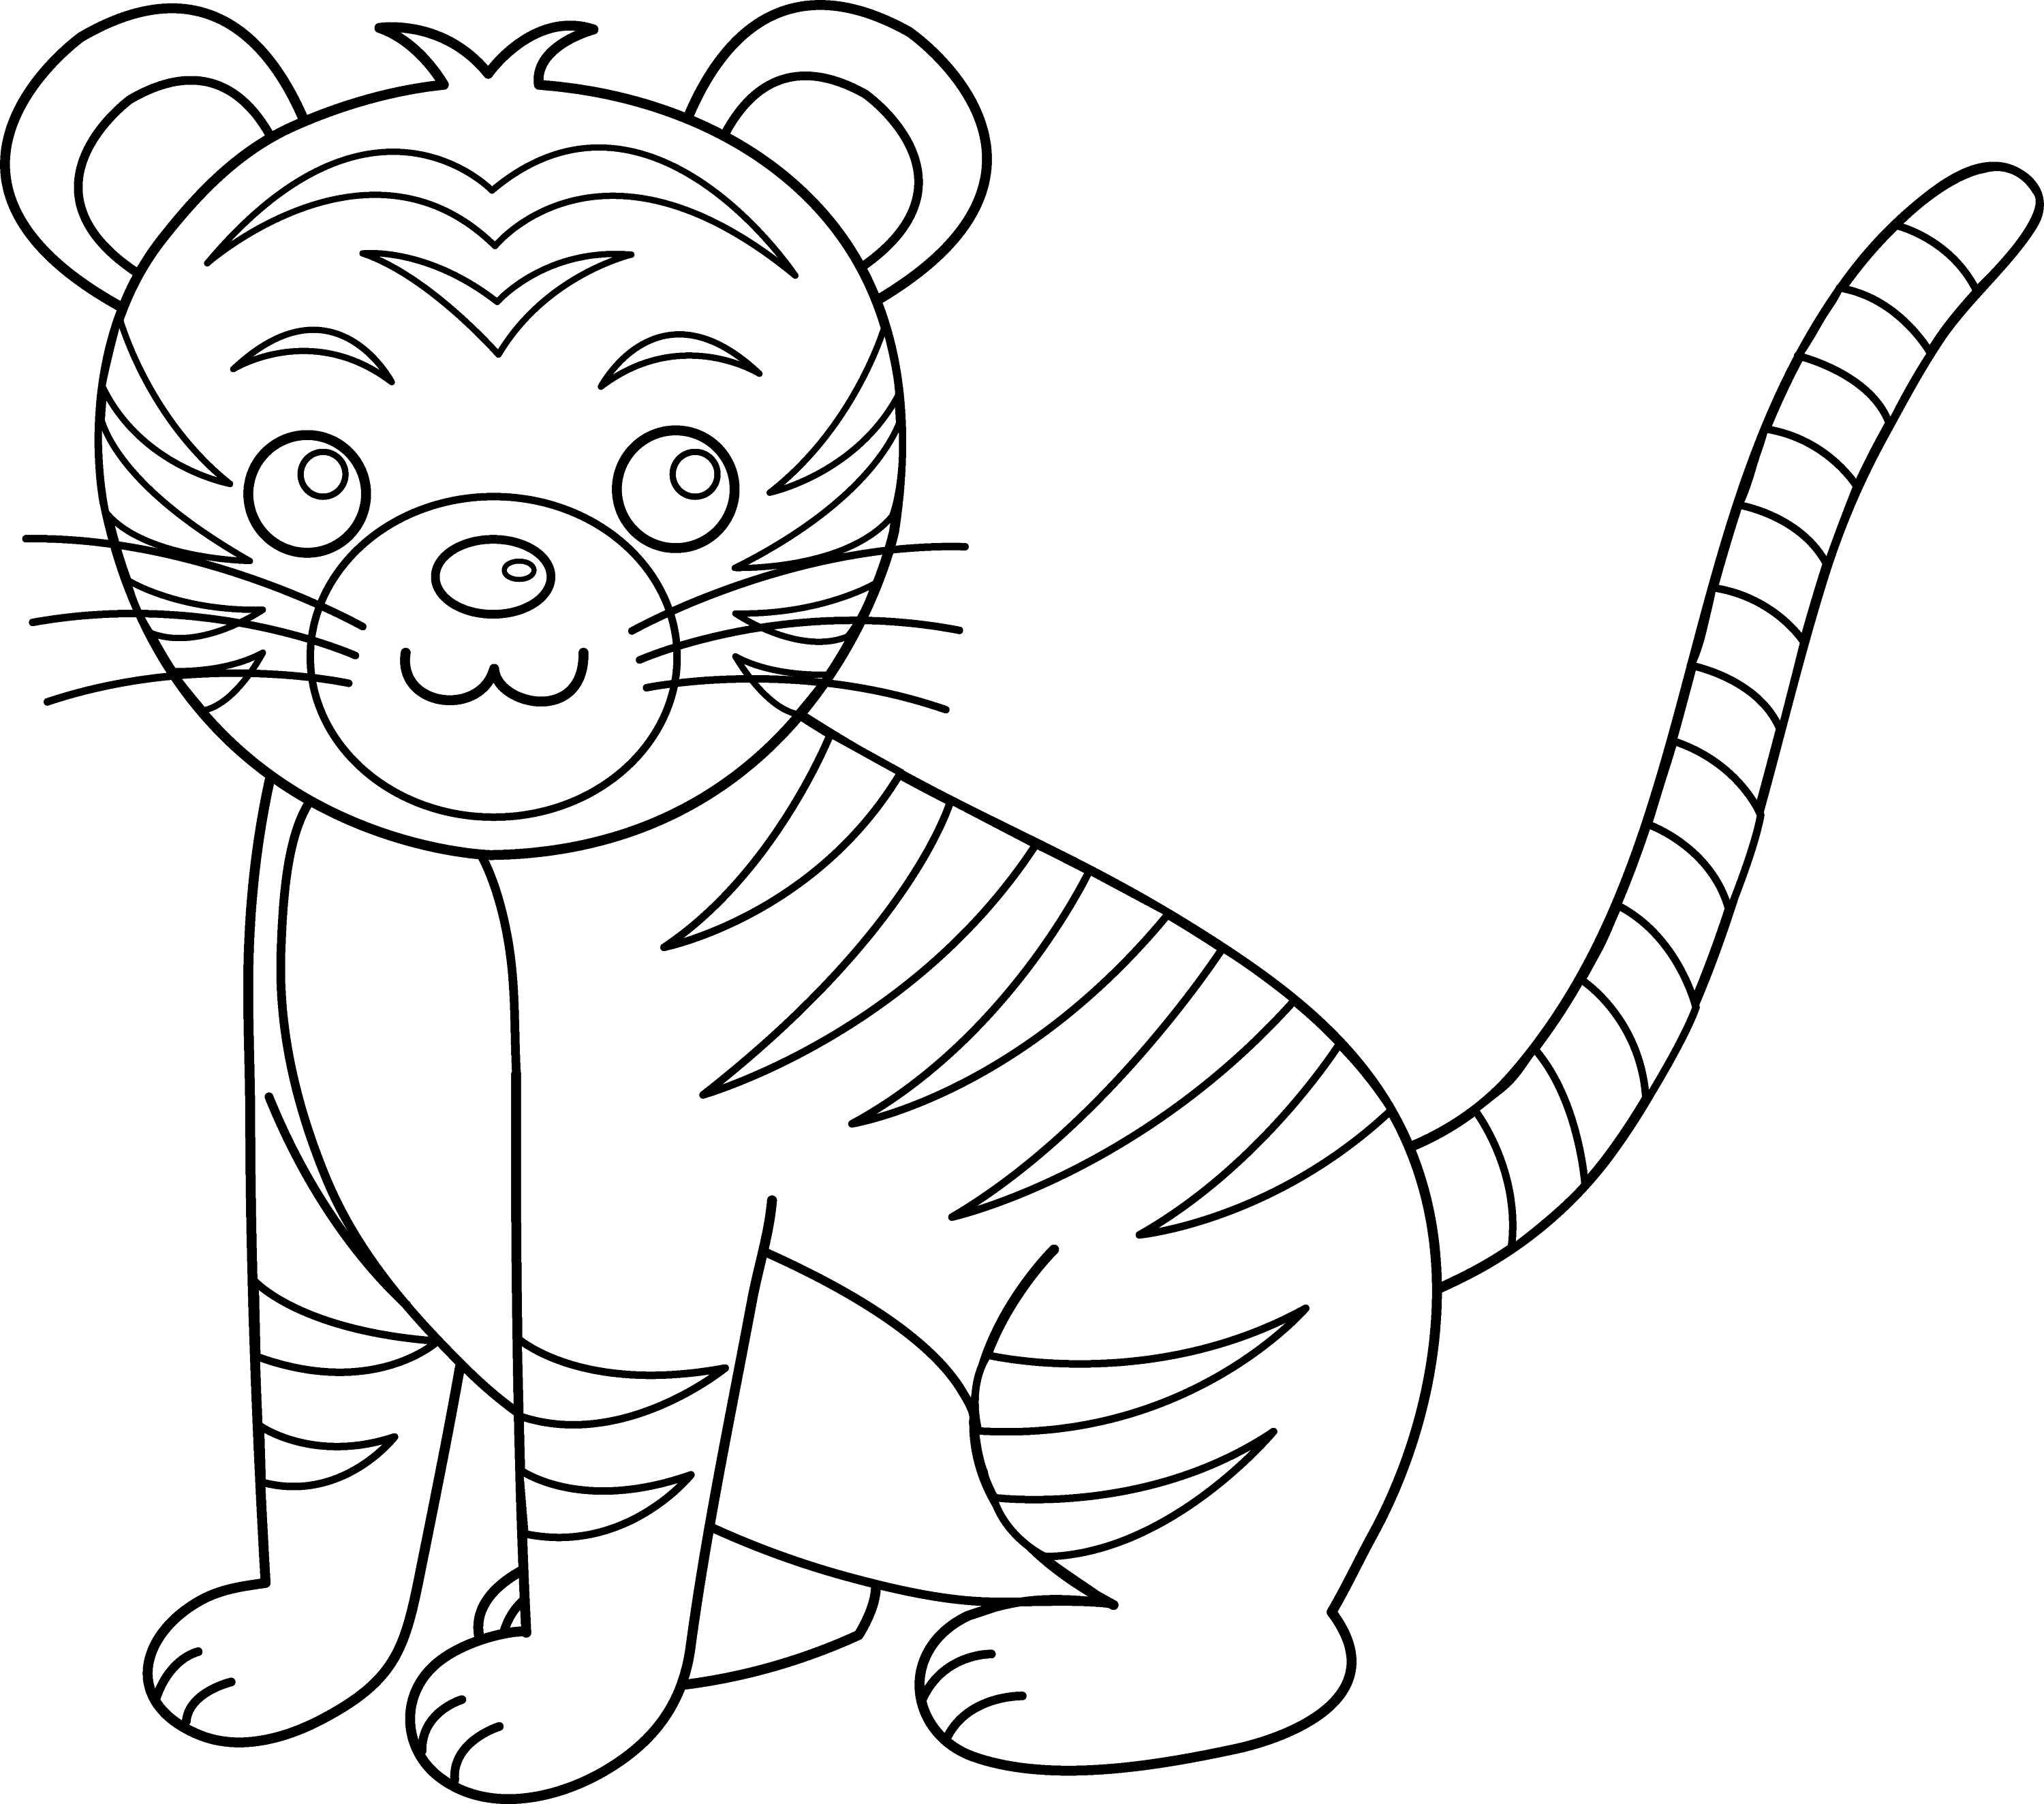 tiger outline drawing pictures of tigers at getdrawings free download tiger outline